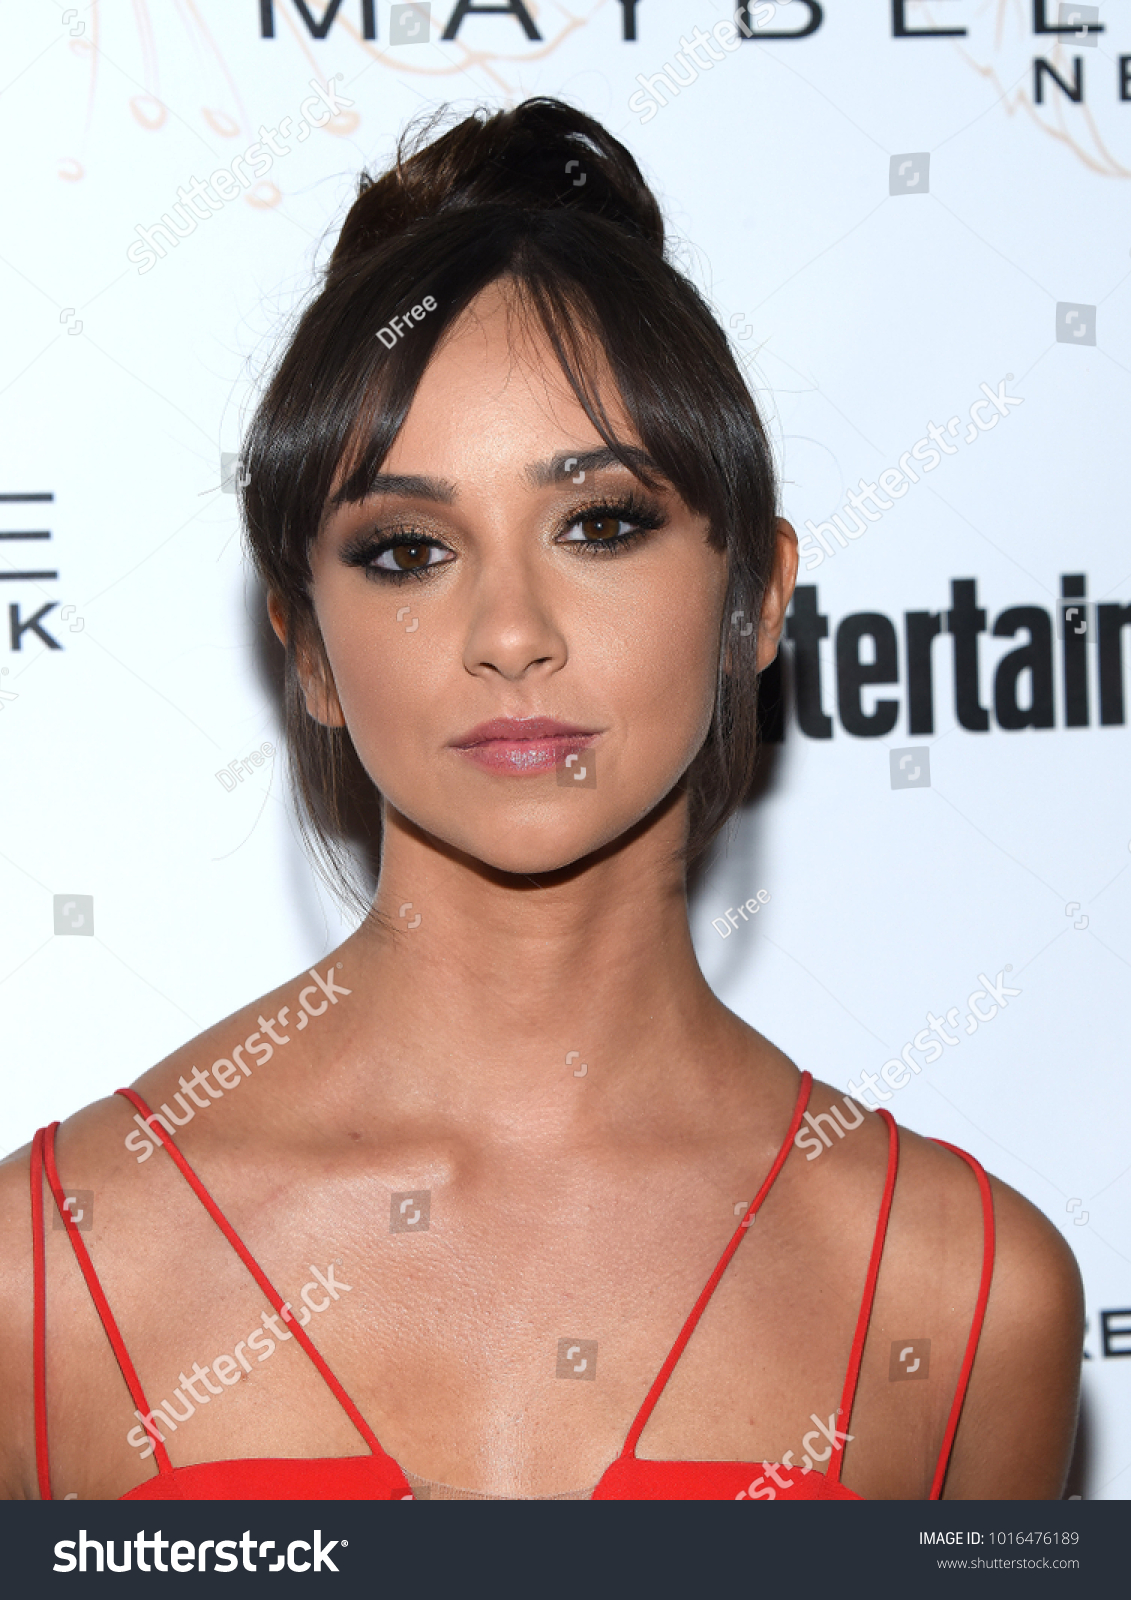 Celebrites Britt Baron nudes (66 foto and video), Ass, Fappening, Selfie, cleavage 2017